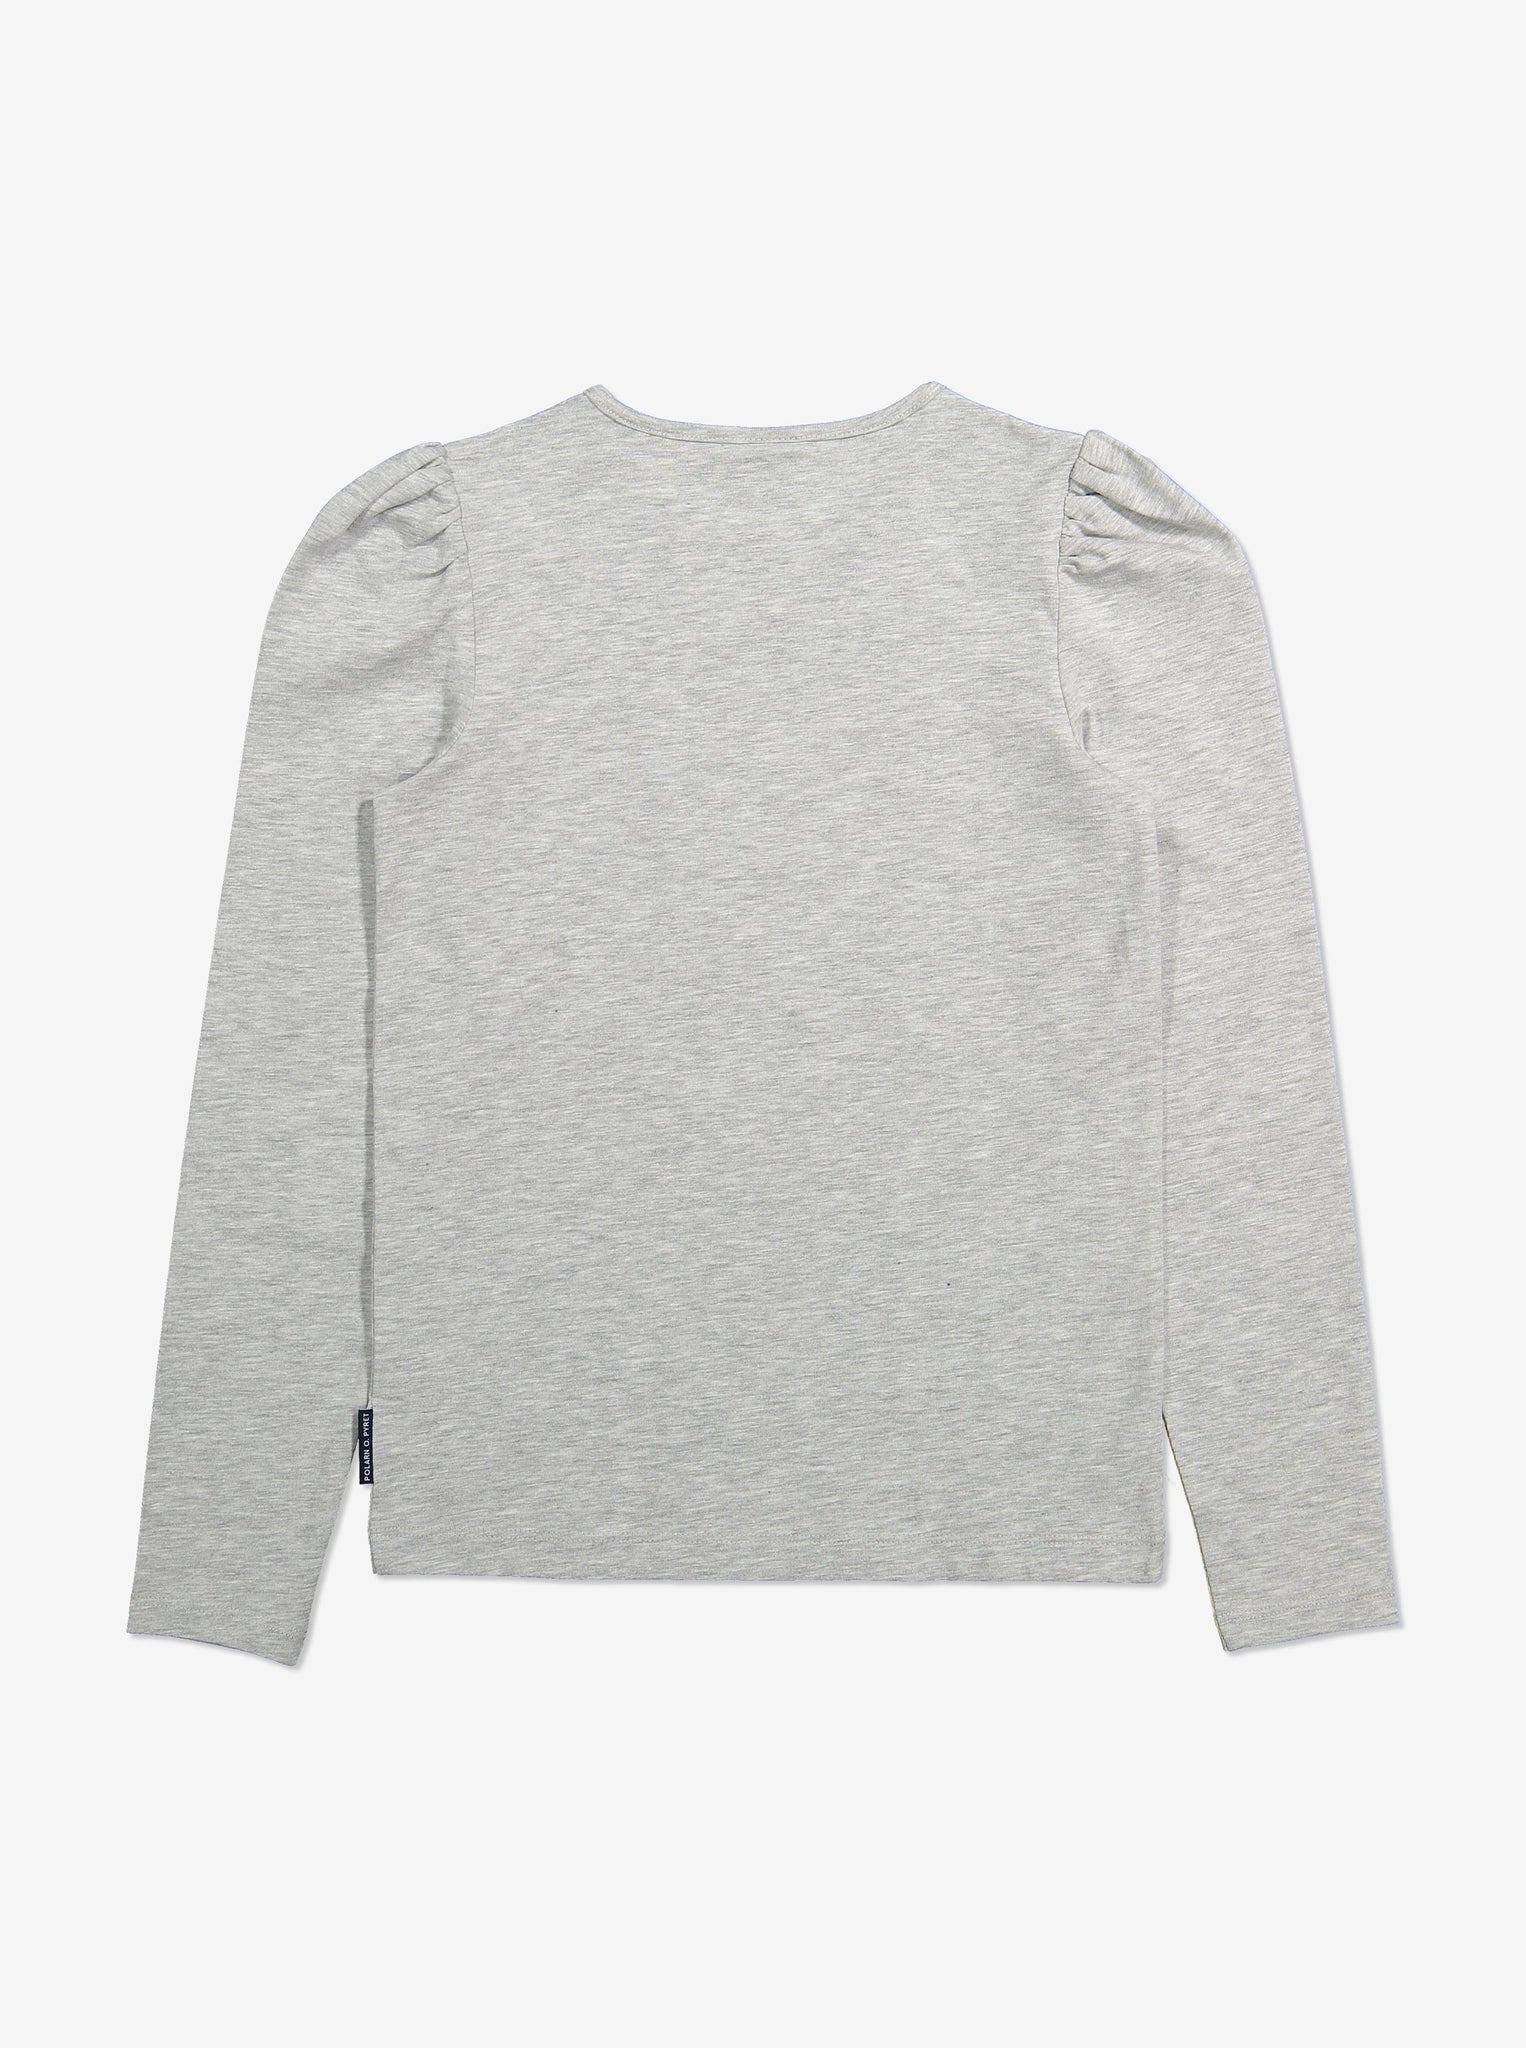 Puff Sleeve Kids Top-Unisex-6-12y-Grey